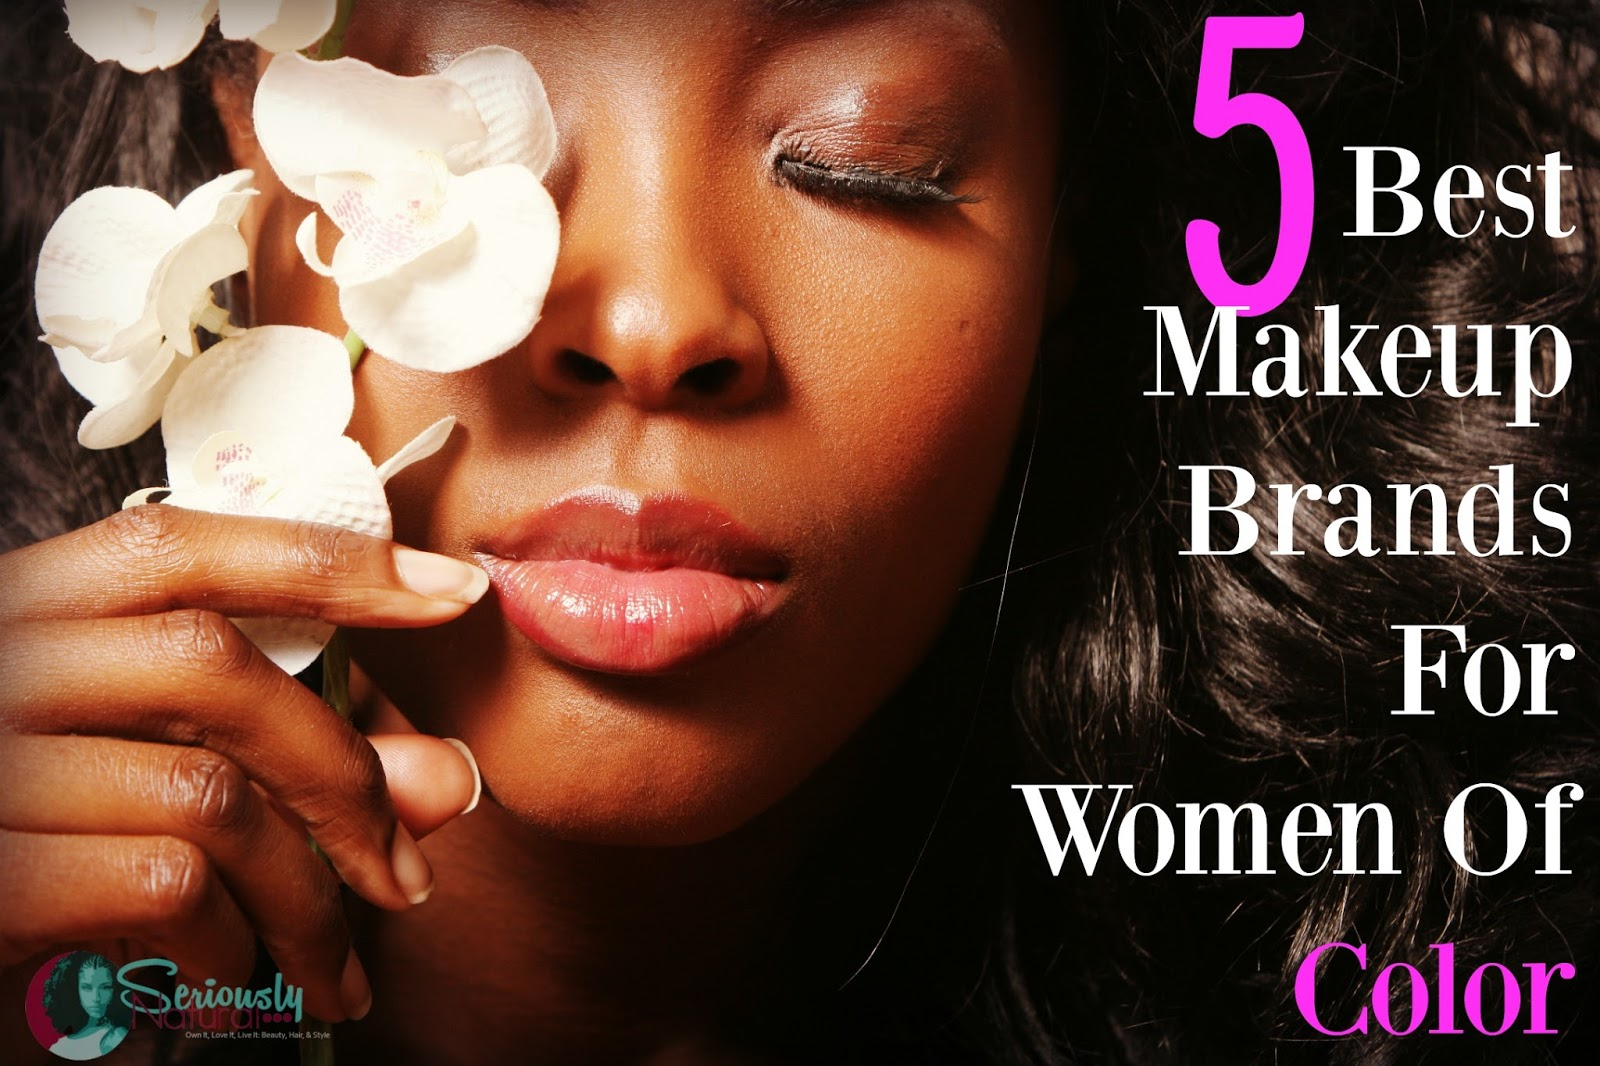 68e606f201c5 Women of color have always felt overlooked in the makeup and beauty product  department. Most of the mainstream companies often fail to include makeup  for ...